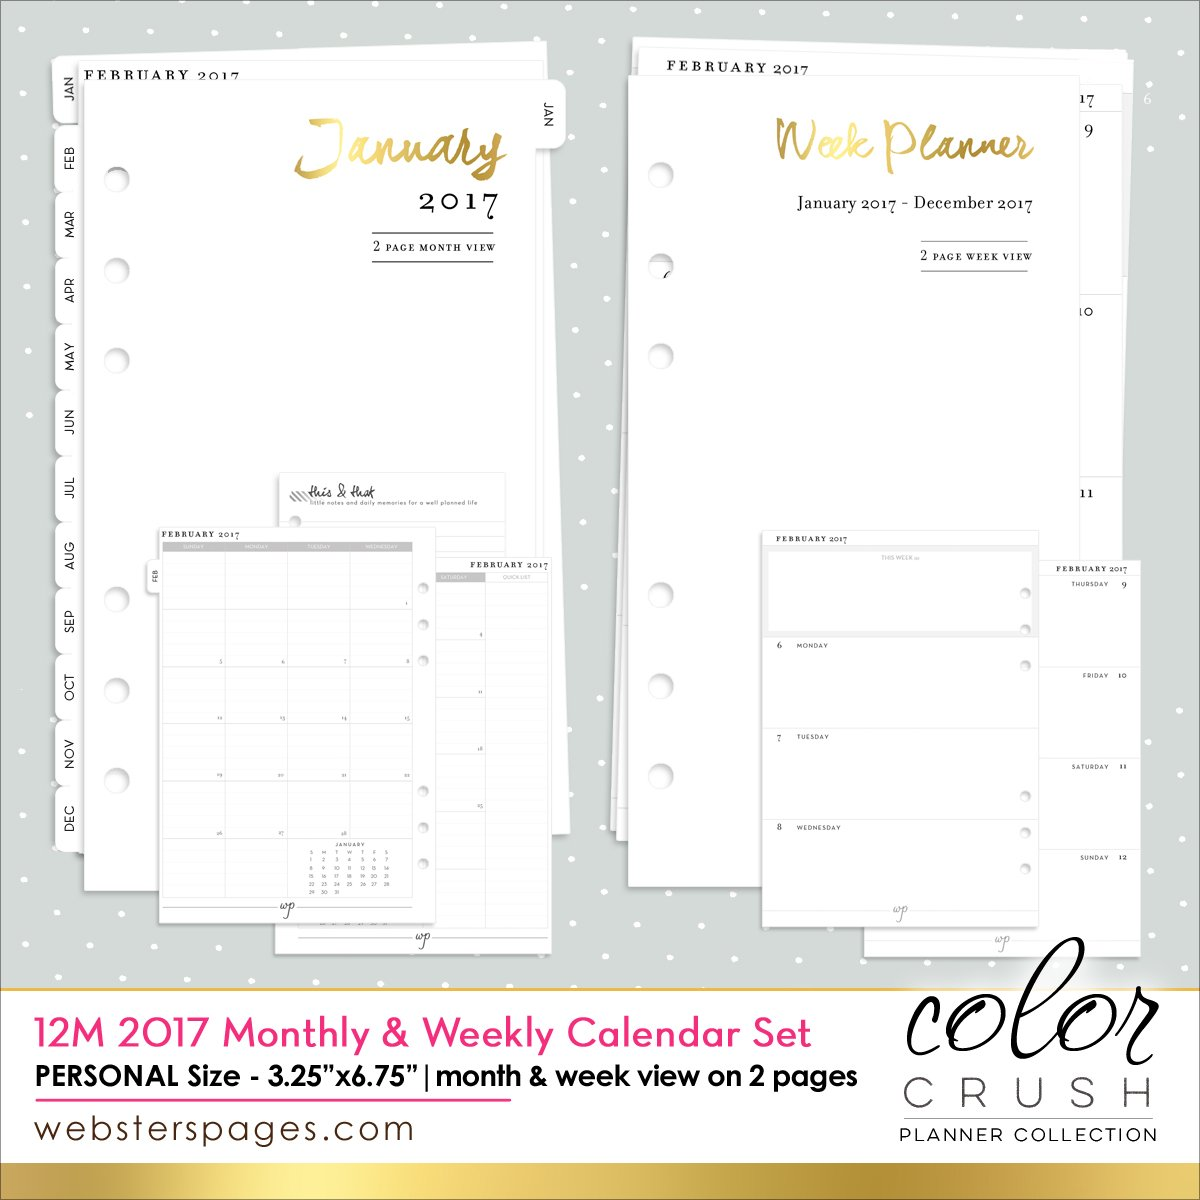 Webster's Pages Personal Size 2017 12-Month Week and Month Calendar (P1017)